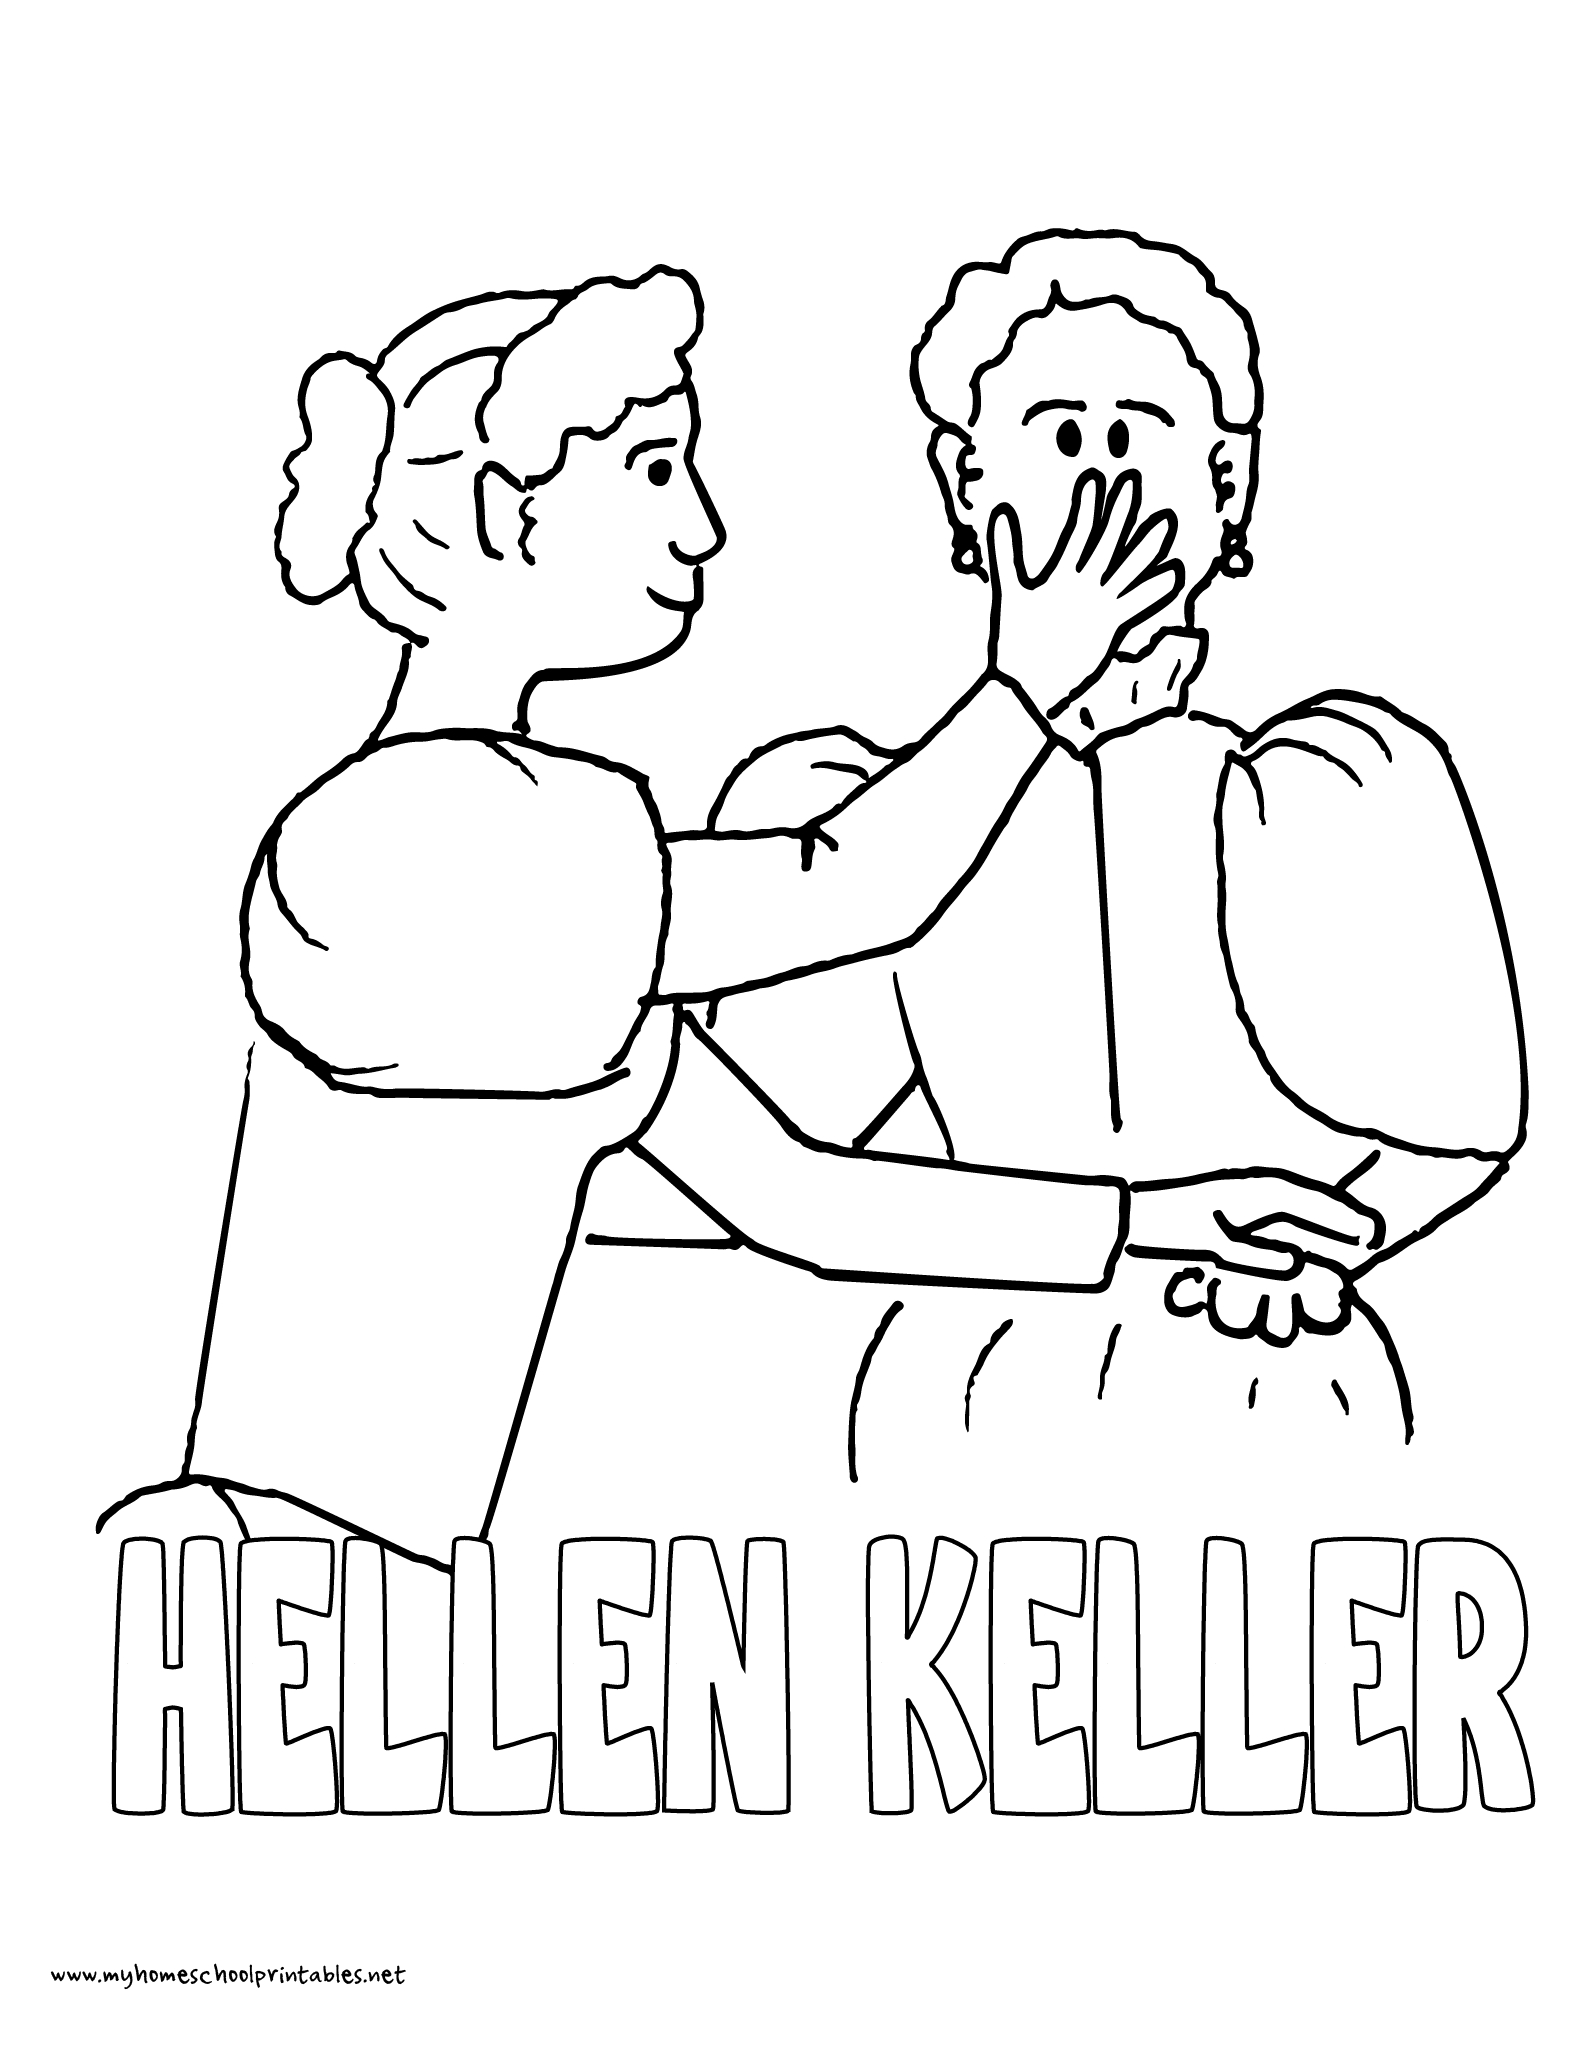 History Coloring Pages – Volume 4 | Mystery Of History 4 | Coloring - Free Printable Pictures Of Helen Keller